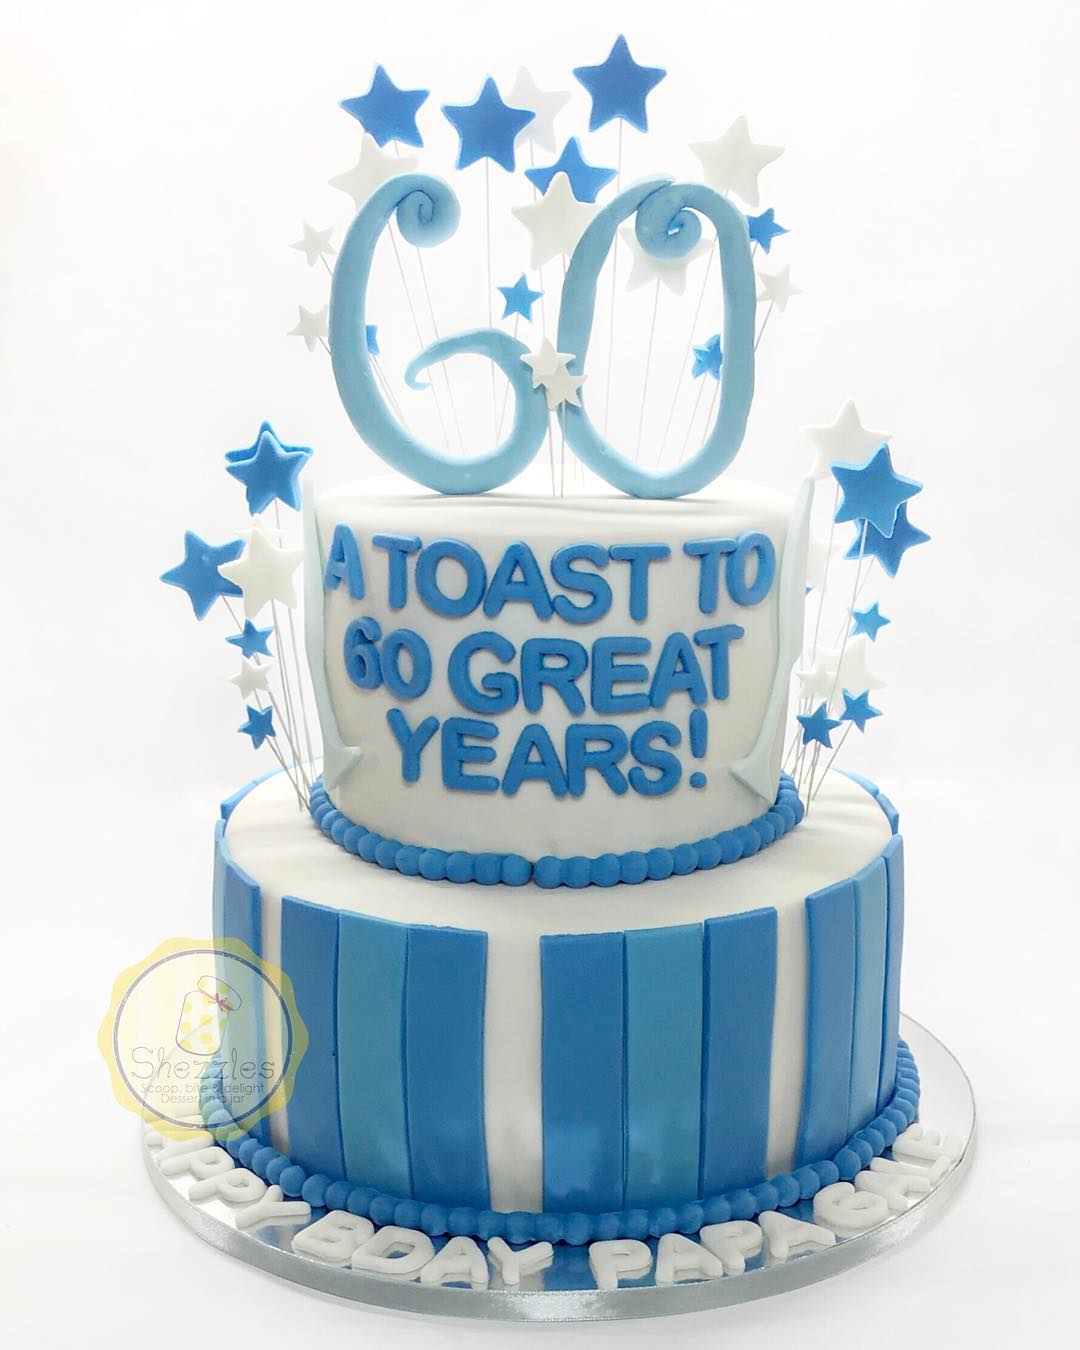 Marvelous Shezzles Cakes And Pastries A Toast To 60Th Birthday Cake Personalised Birthday Cards Paralily Jamesorg